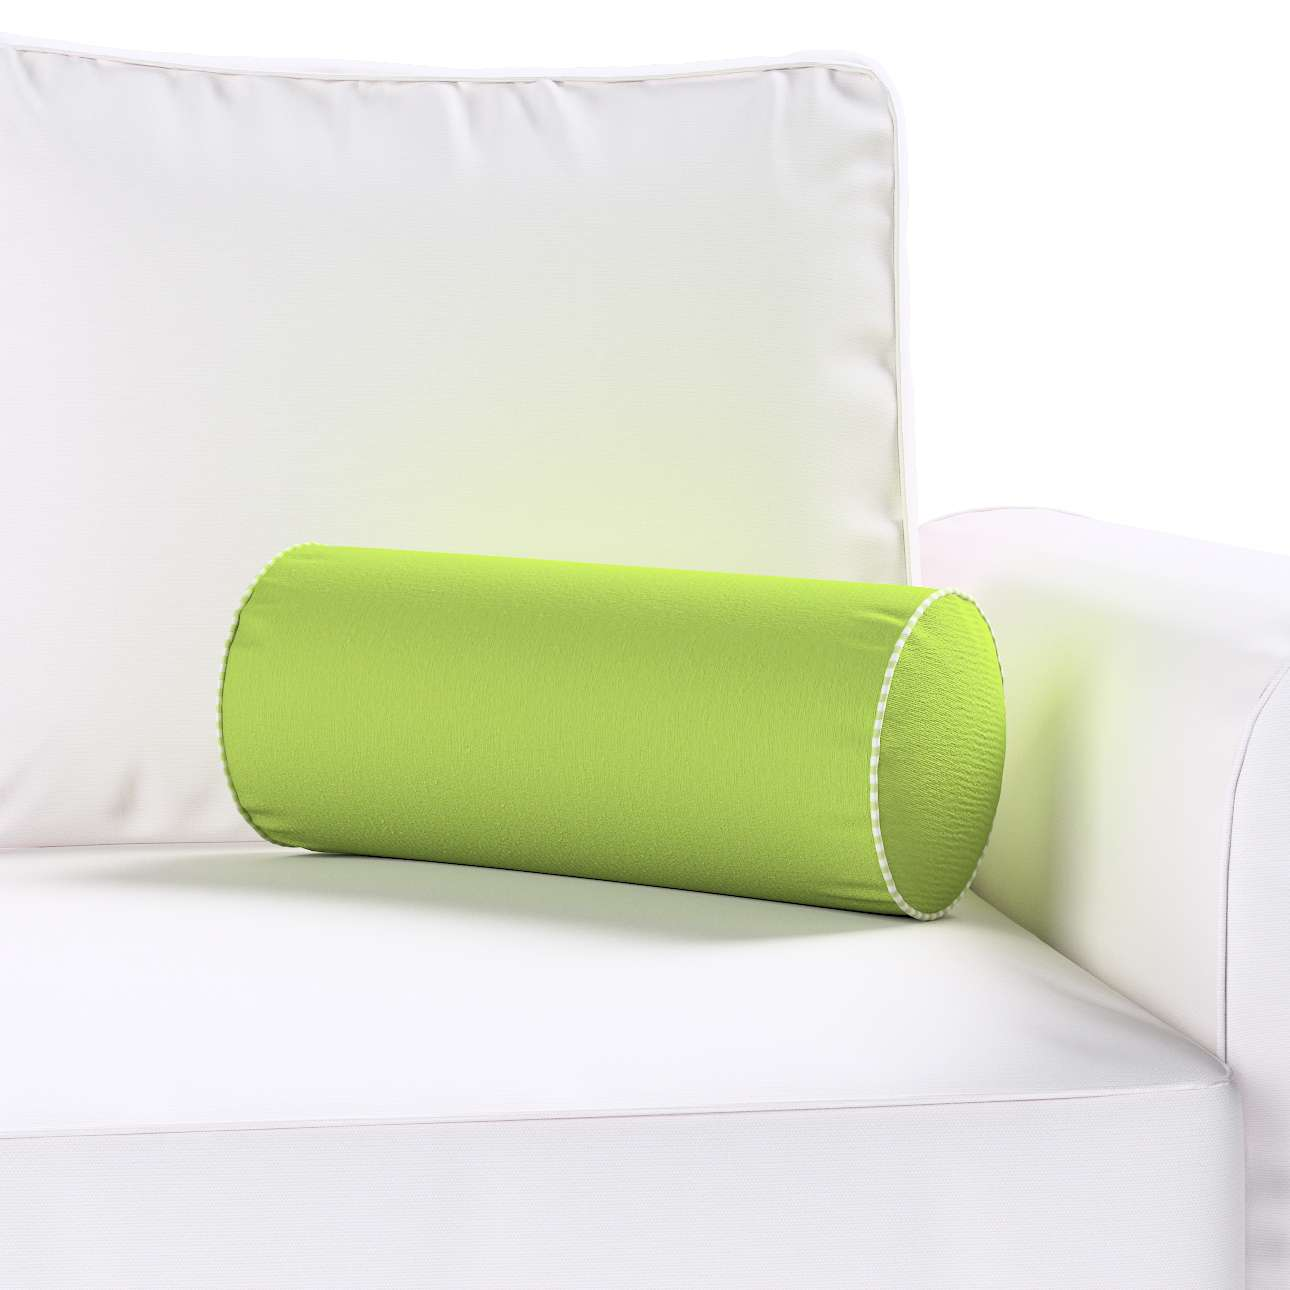 Bolster cushion  Ø 16 x 40 cm (6 x 16 inch) in collection Quadro, fabric: 136-37